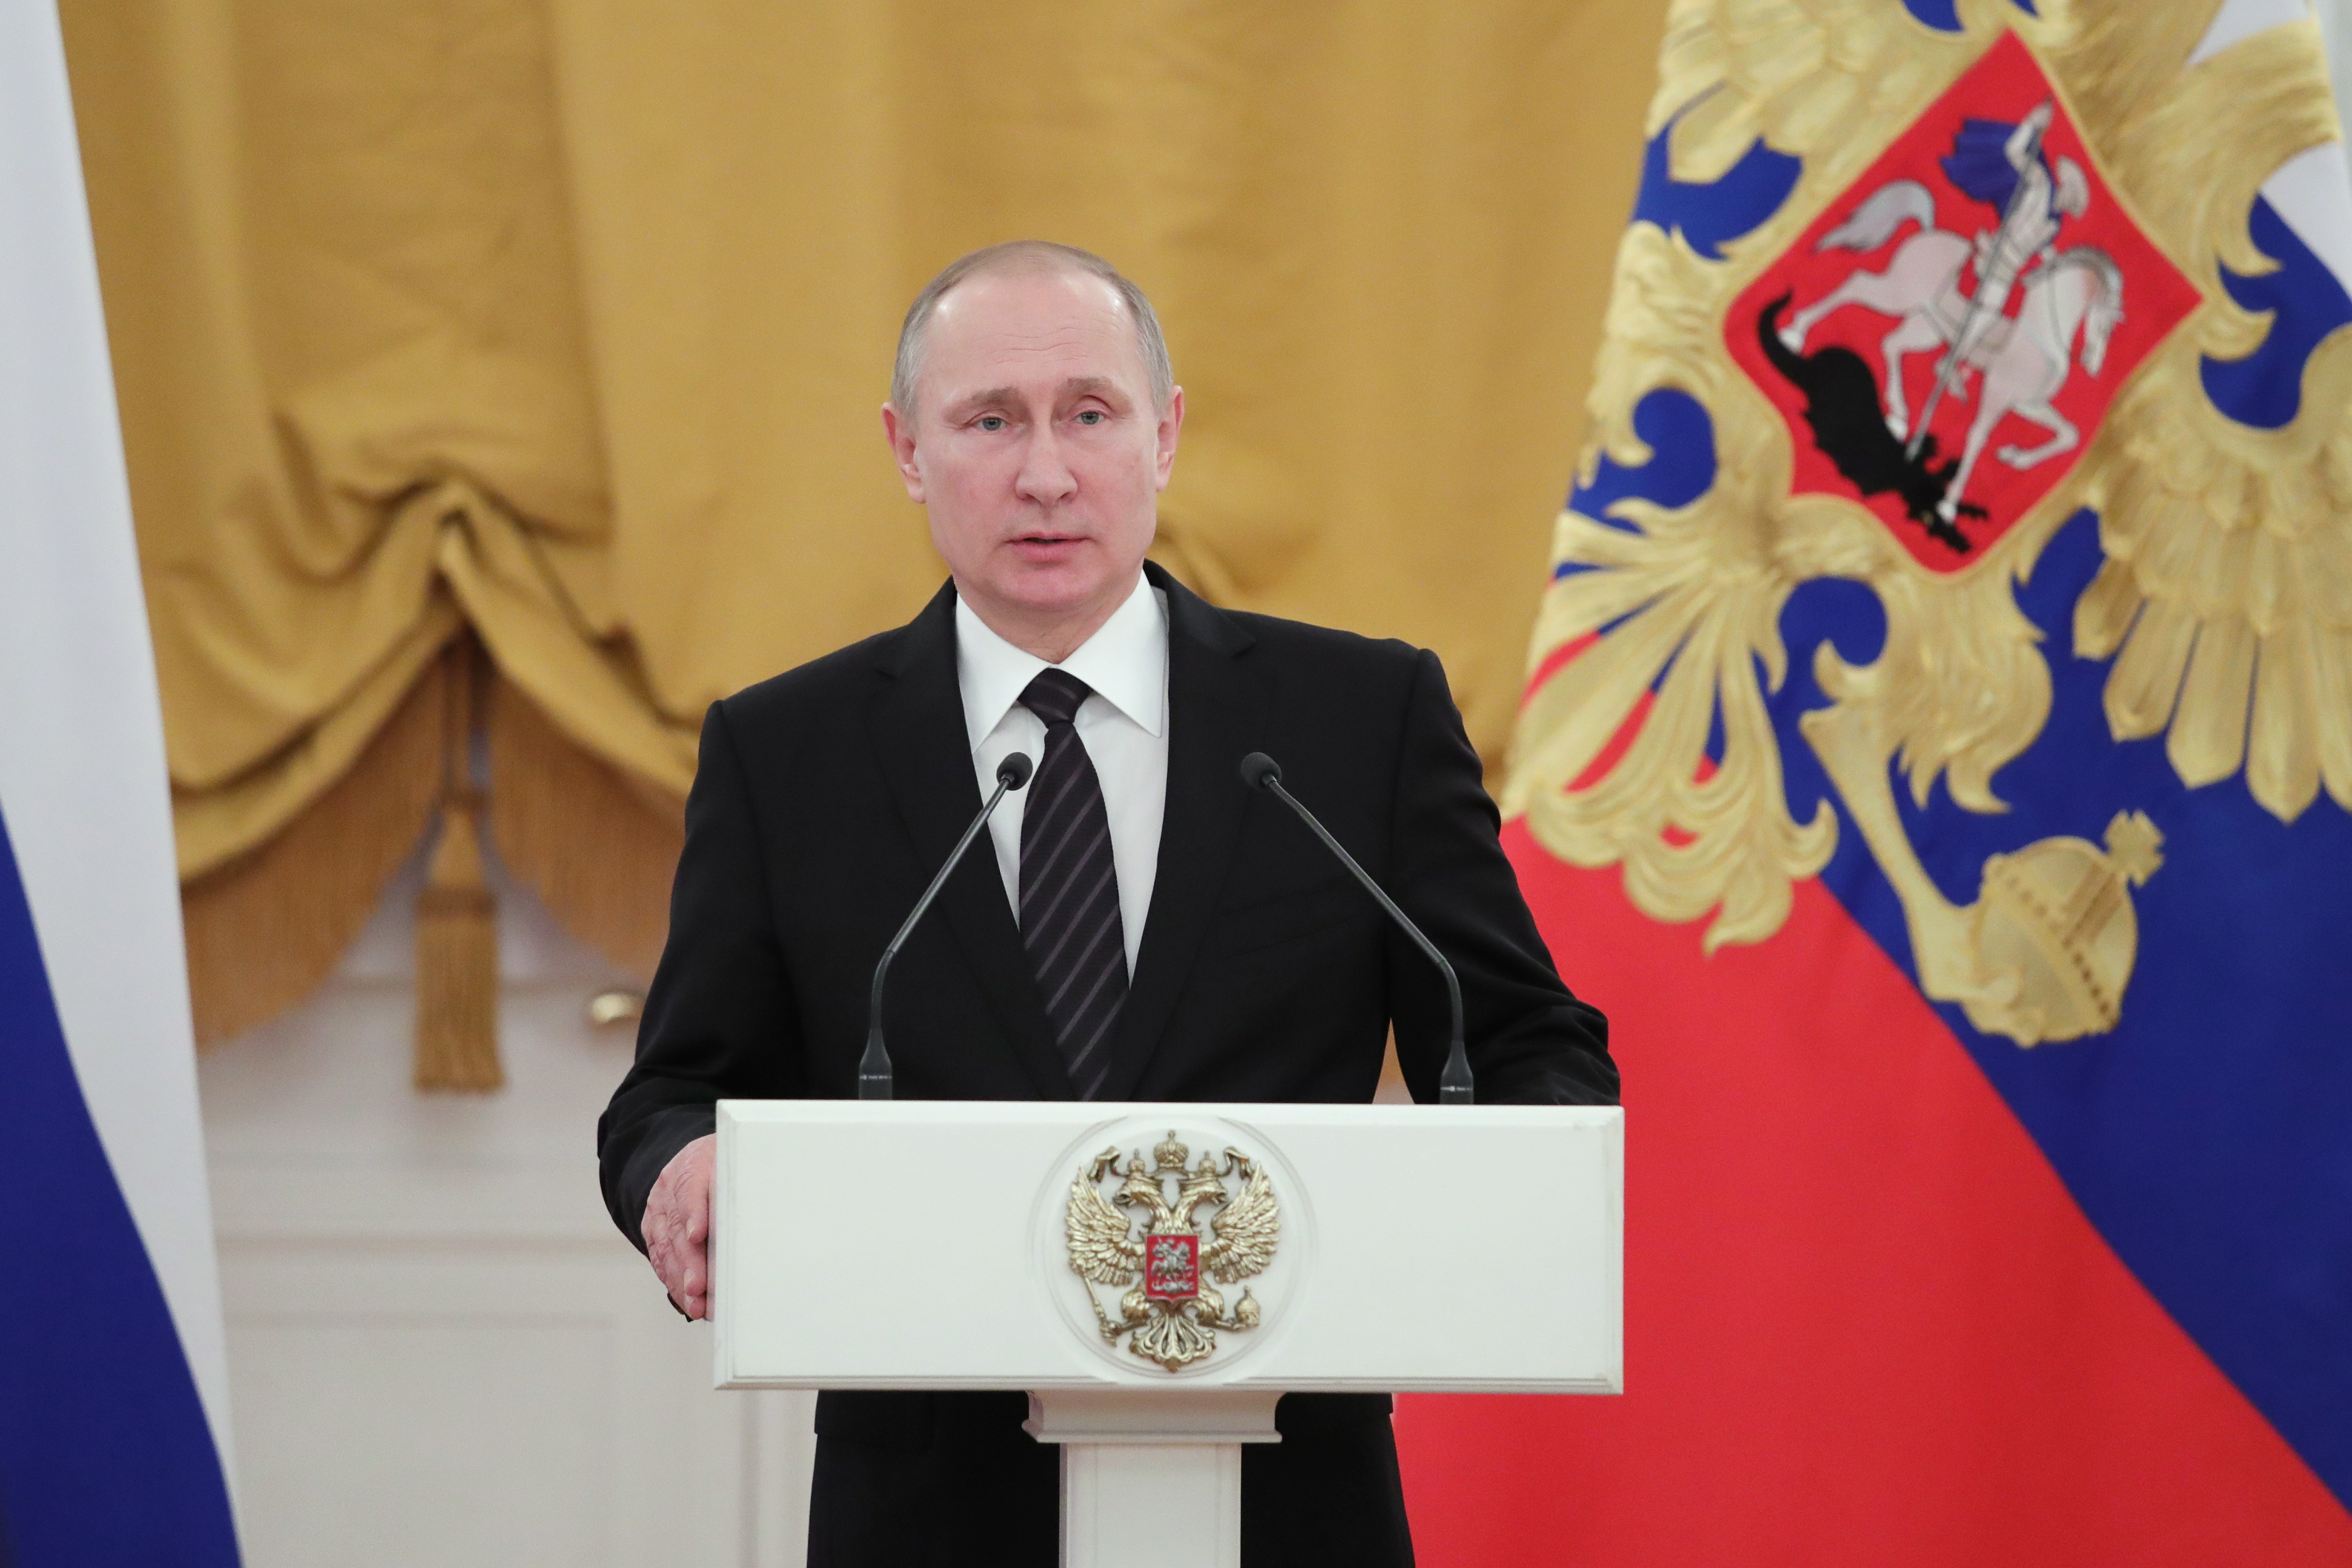 President Putin hosts reception for upcoming Year 2017